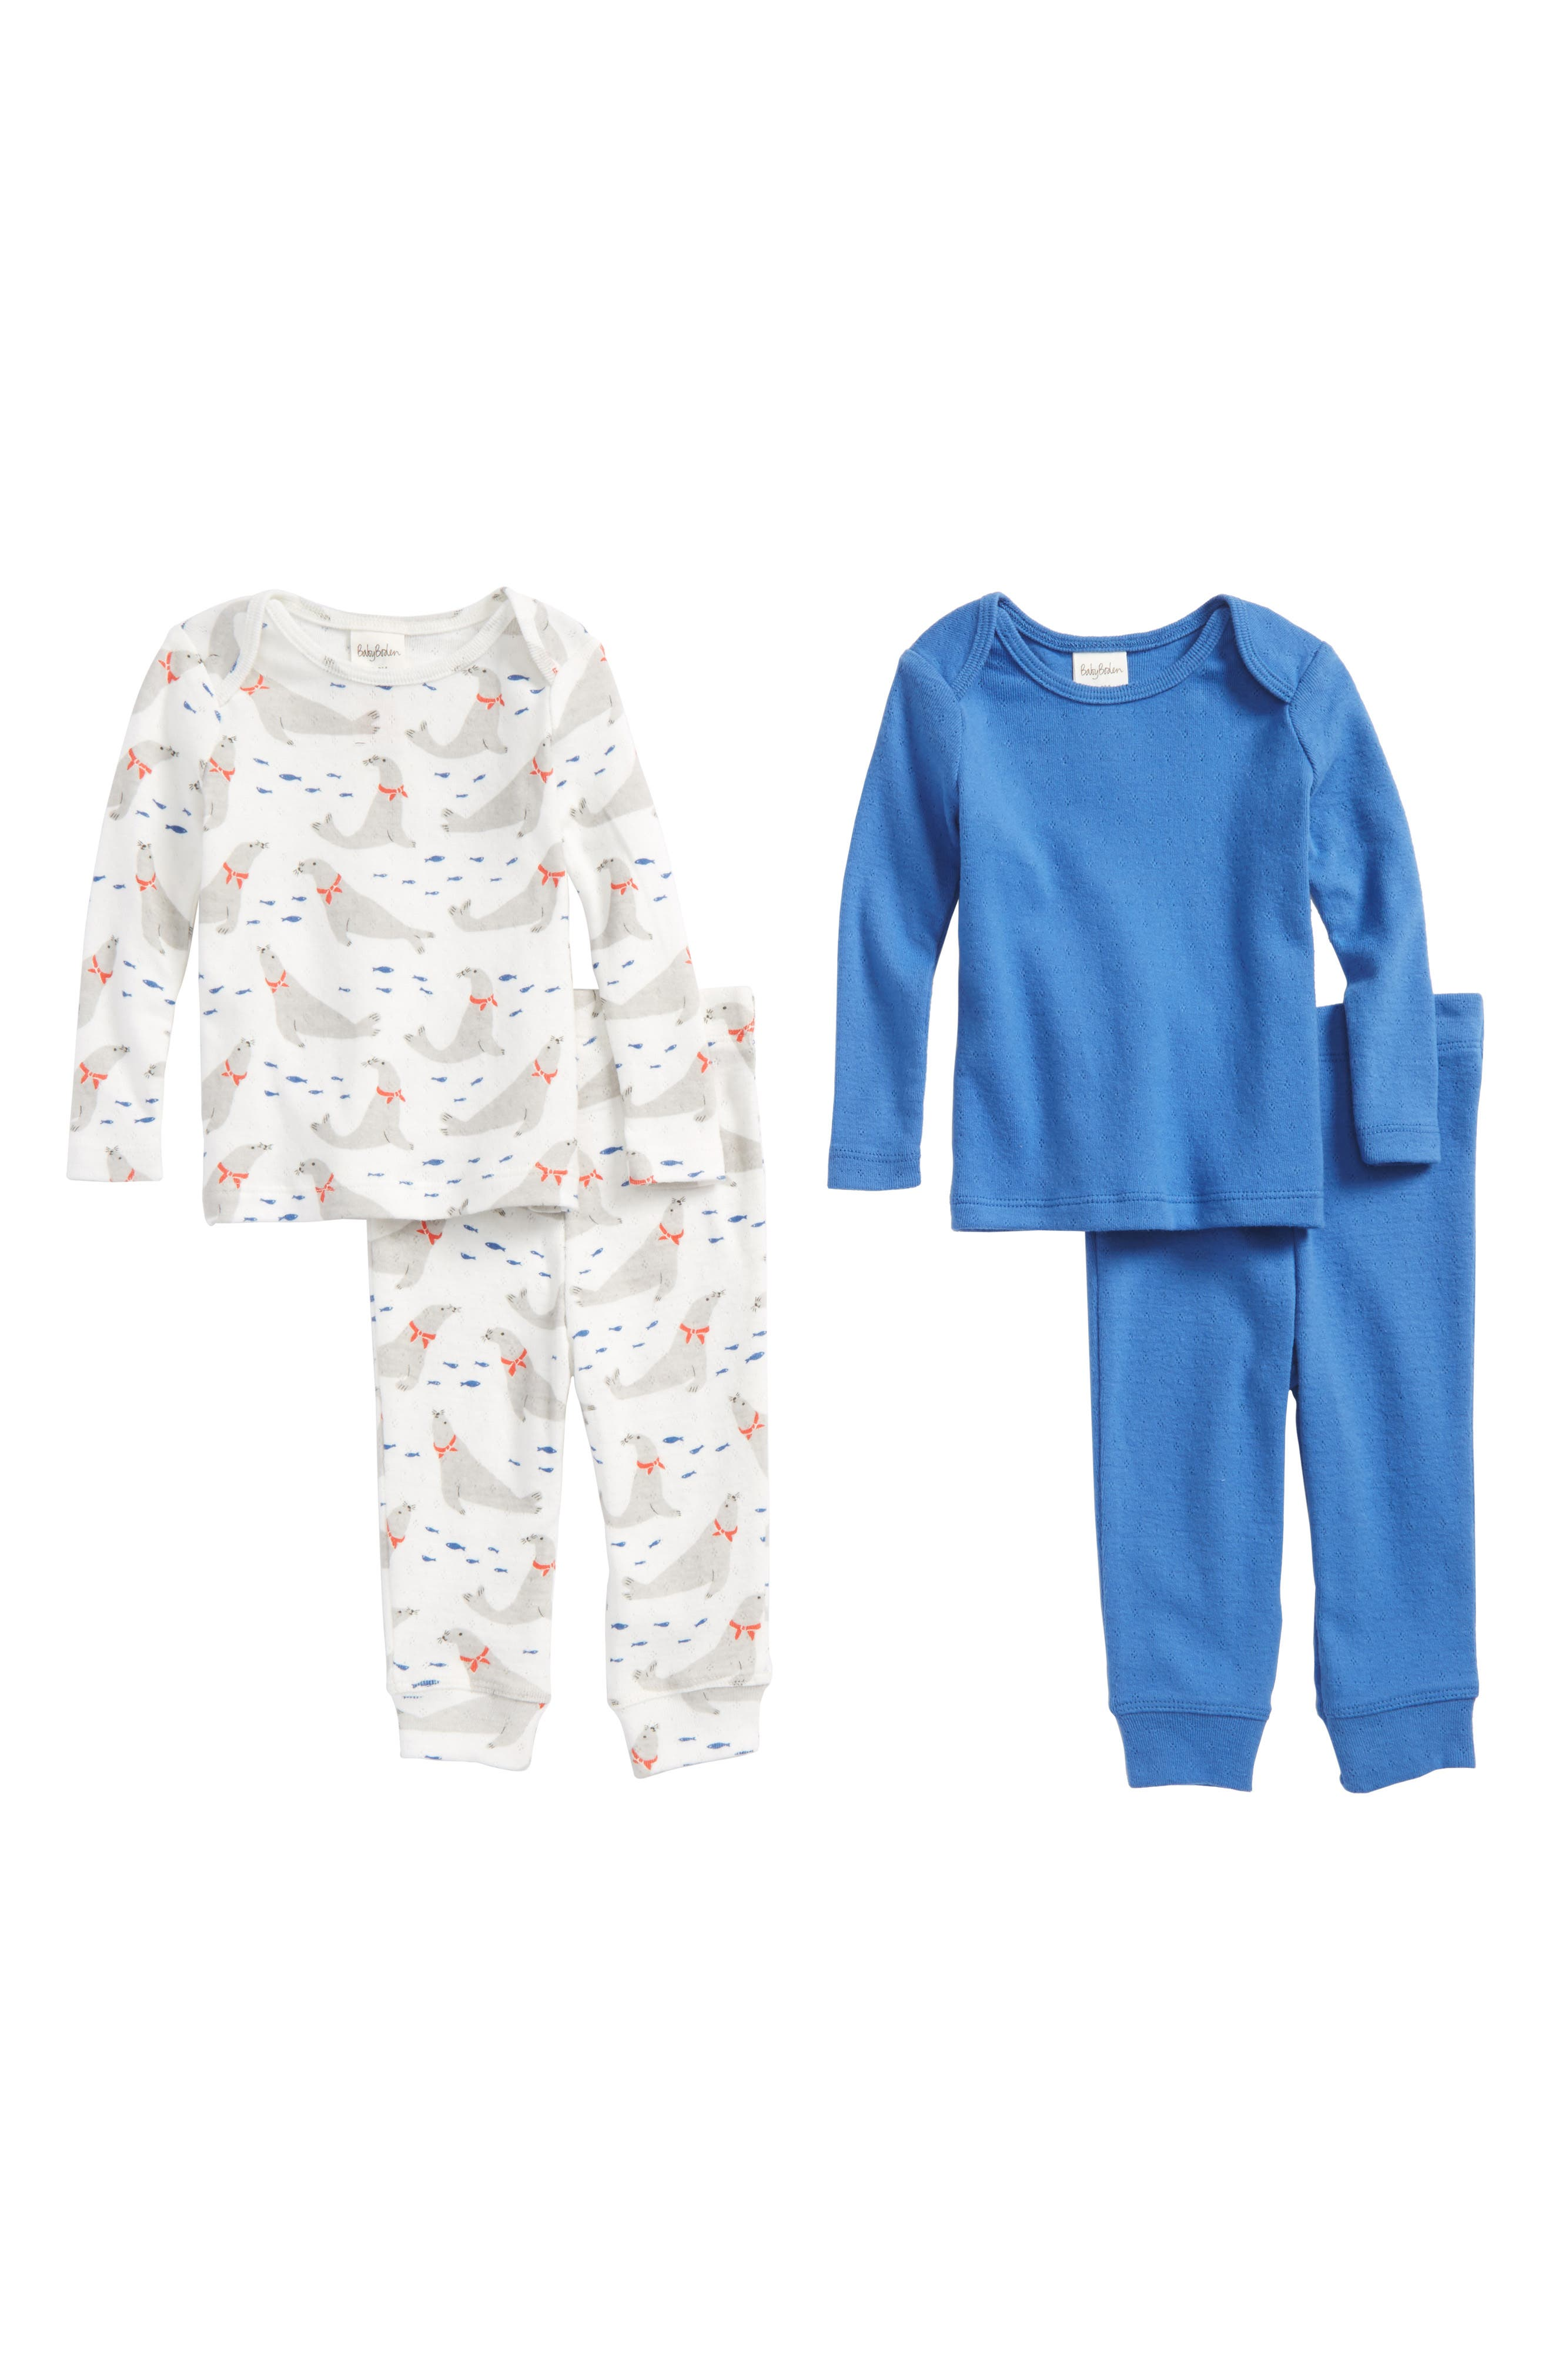 Pointelle 4-Piece Fitted Pajama Set,                             Main thumbnail 1, color,                             Ivory Seals